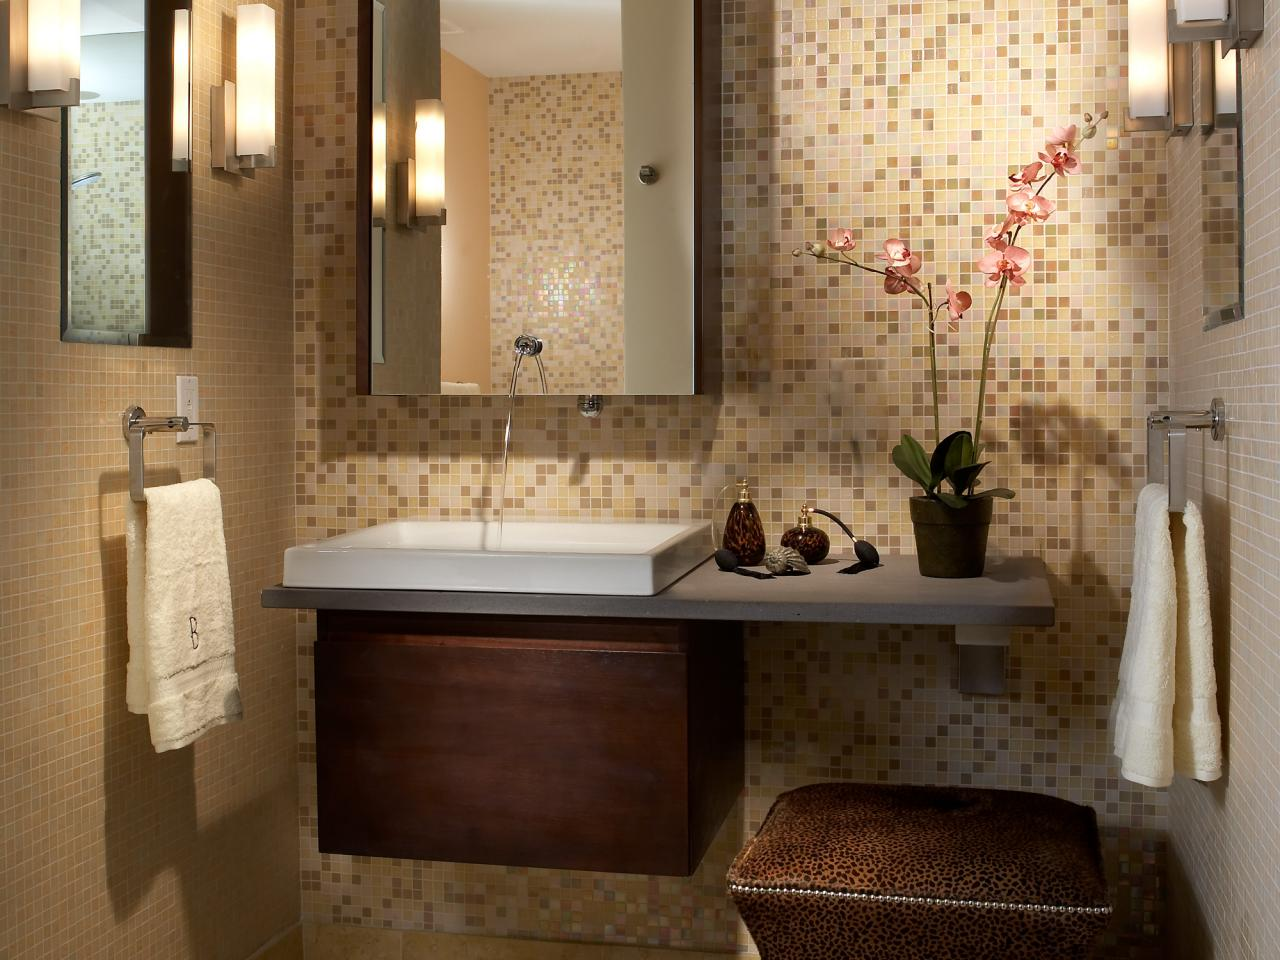 Bon Beautiful Bathroom Backsplash Ideas Using Small Tile Also Lavish Wall Lamps